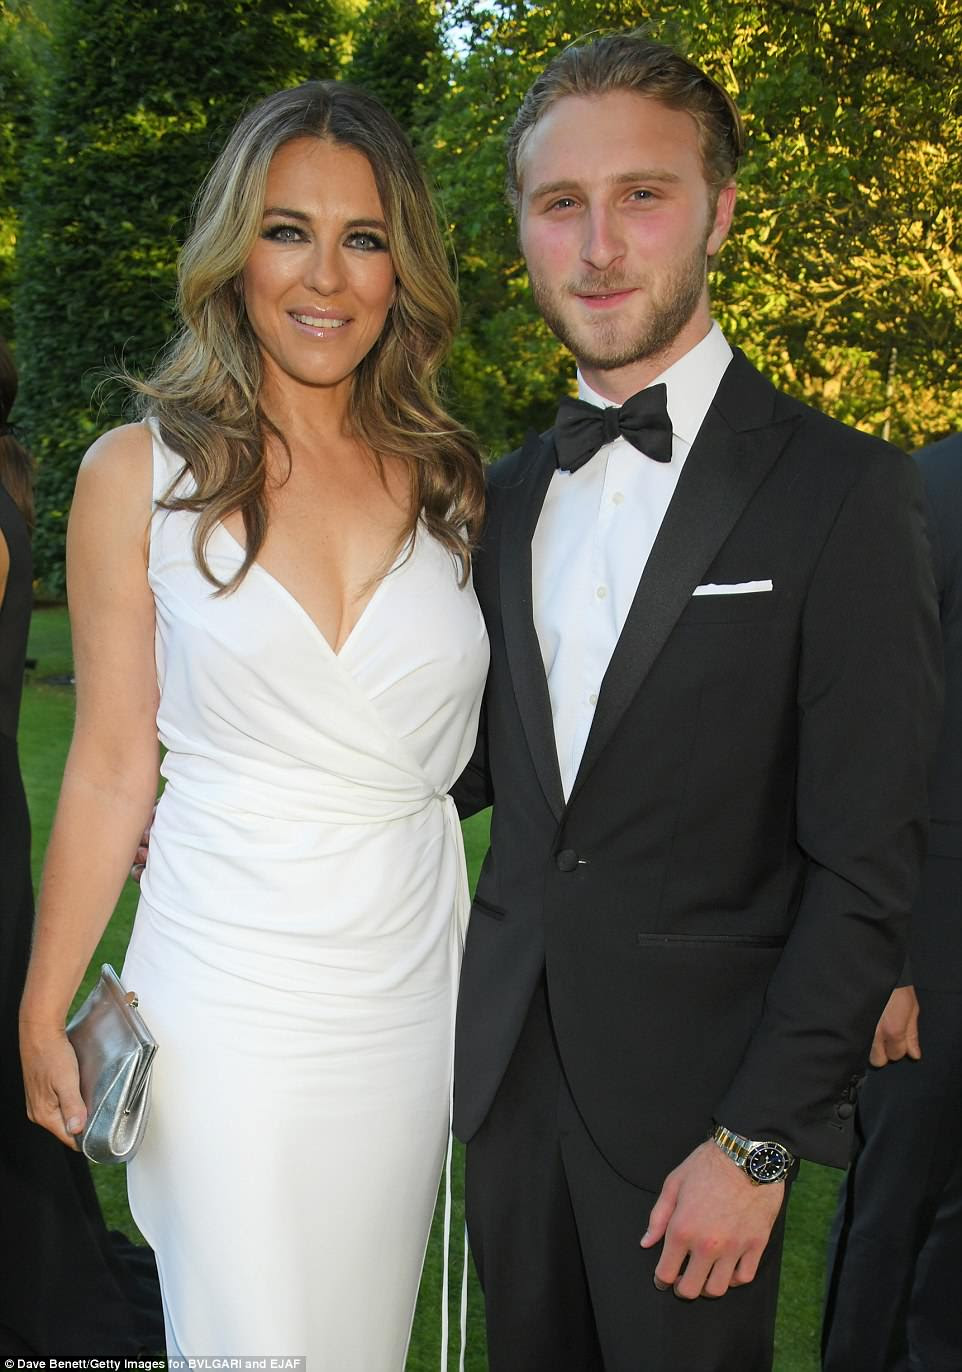 Camera ready: Elizabeth (L) and Manouk Manoukian posed for photos at the event